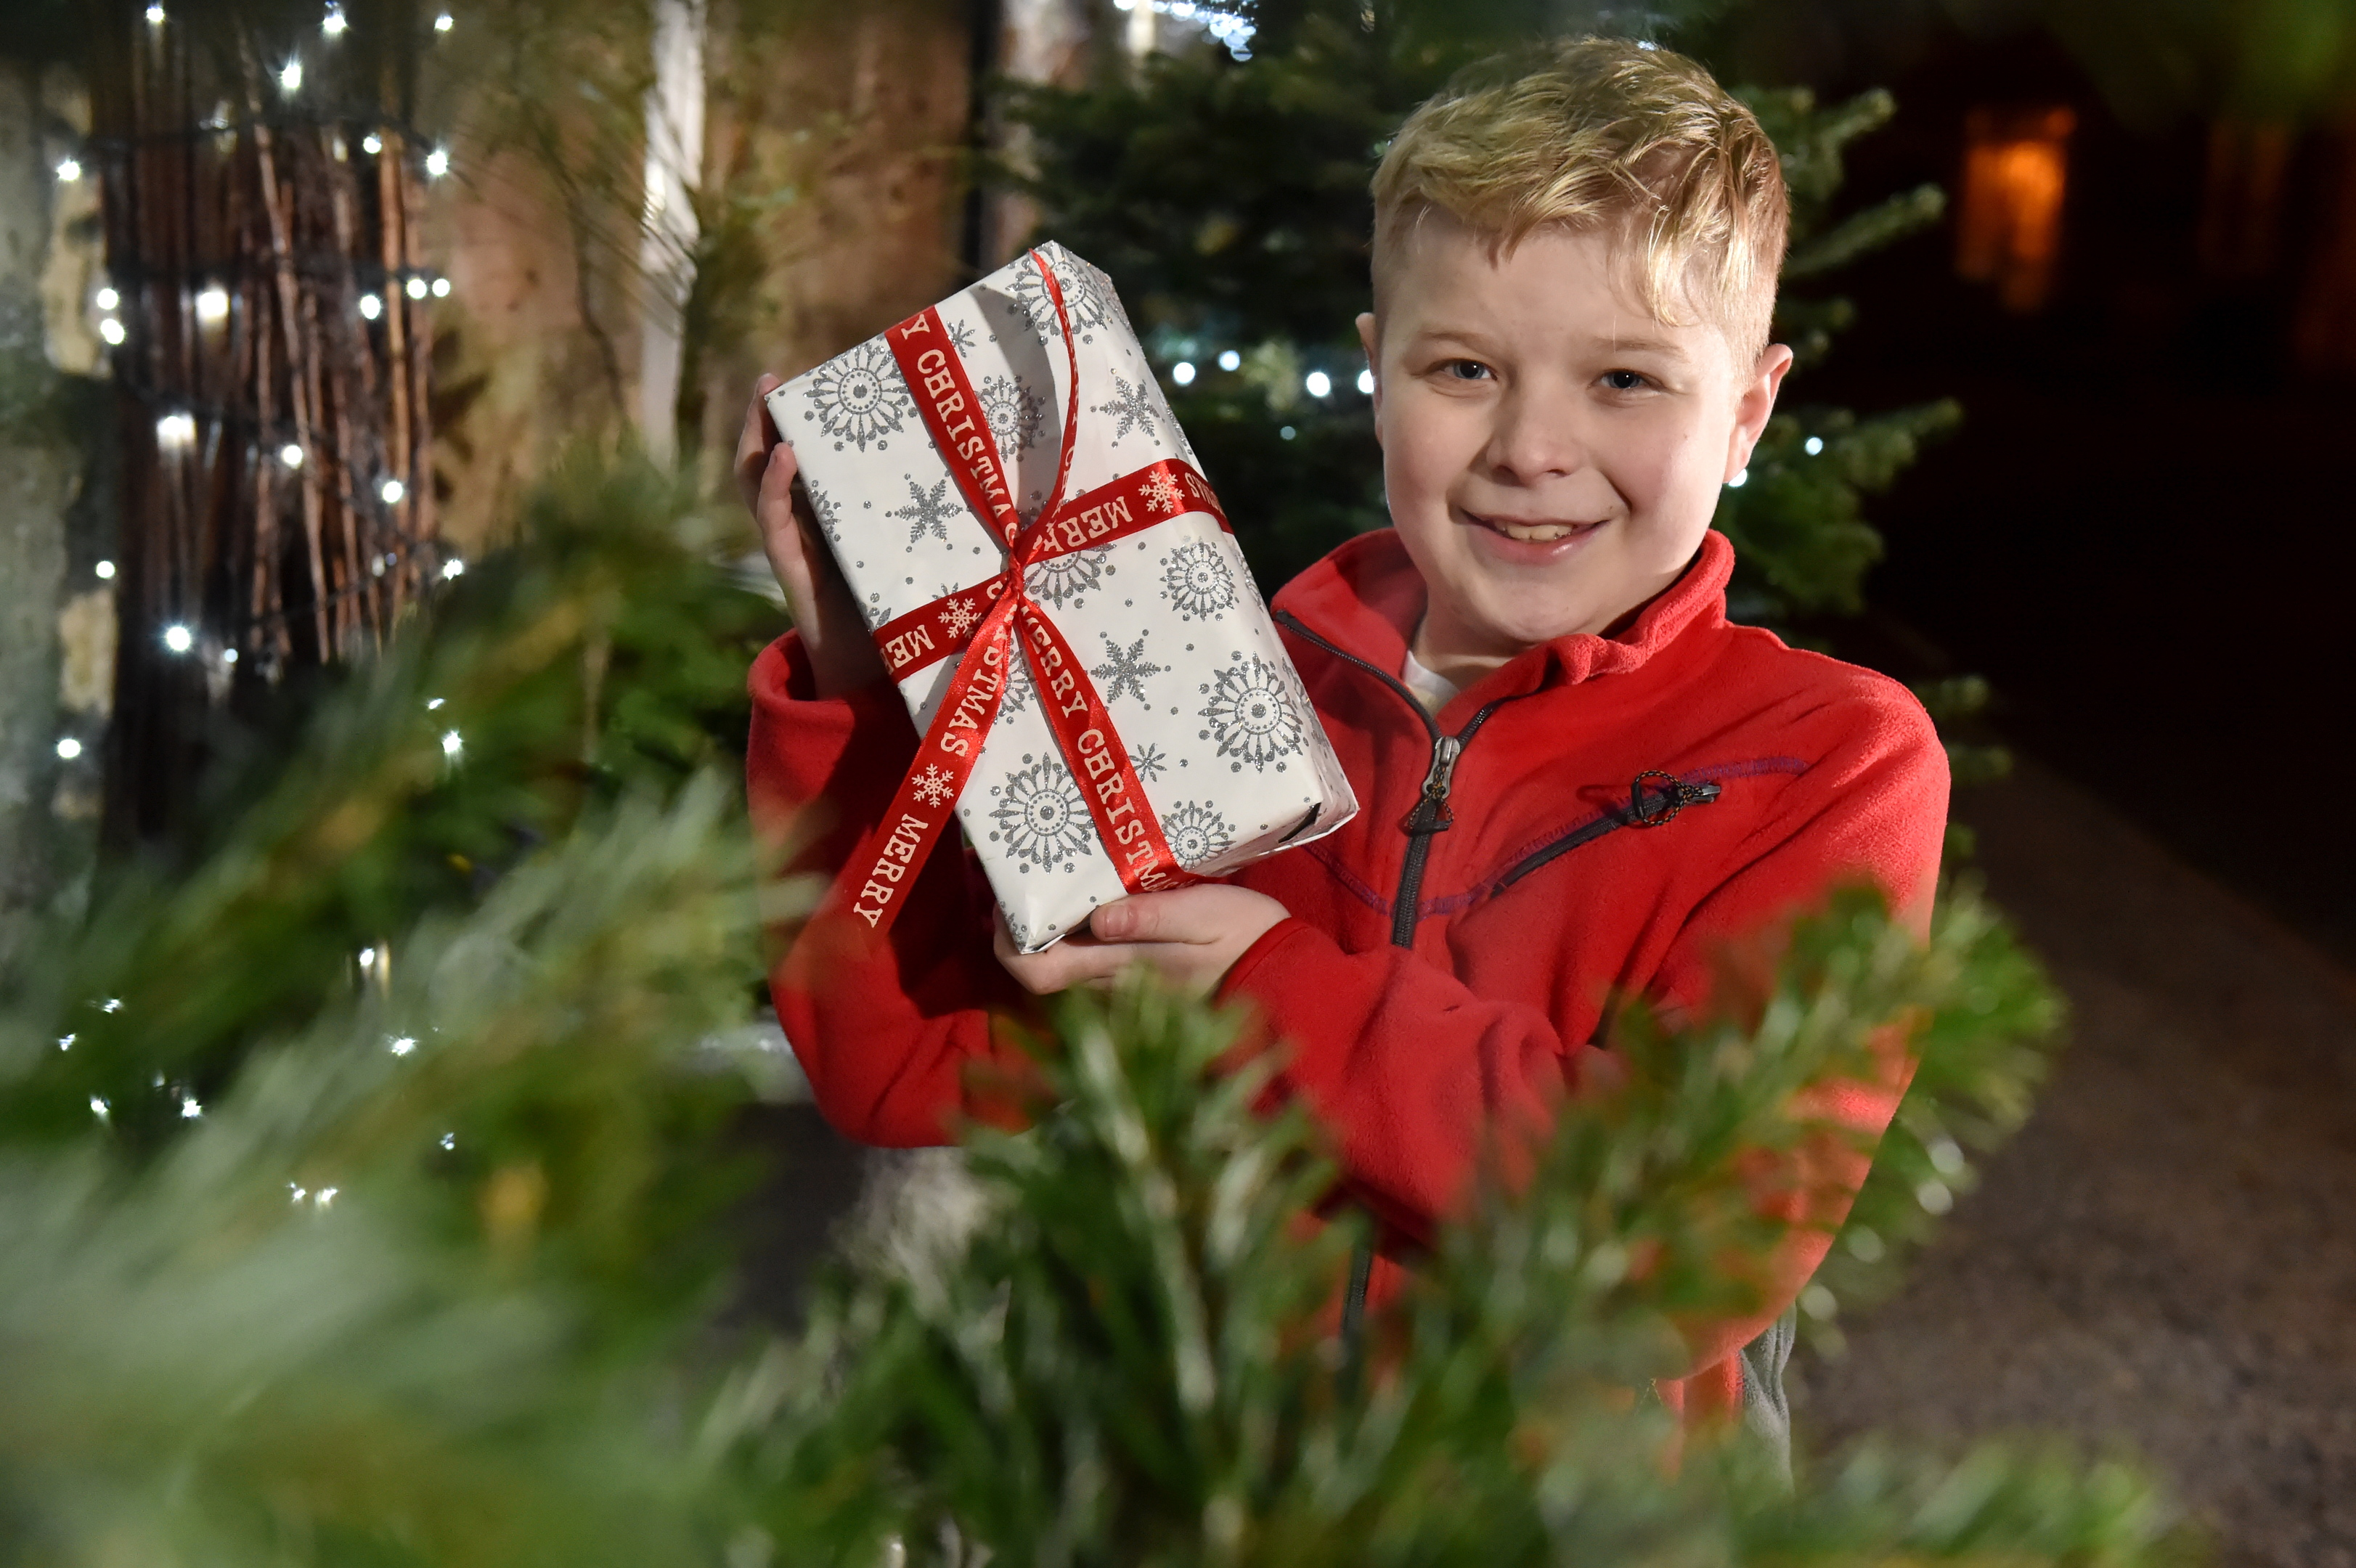 Caleb Middleton, 12, is asking his friends and family to donate to Friends of ANCHOR this year instead of giving him Christmas presents. Picture by Kenny Elrick.